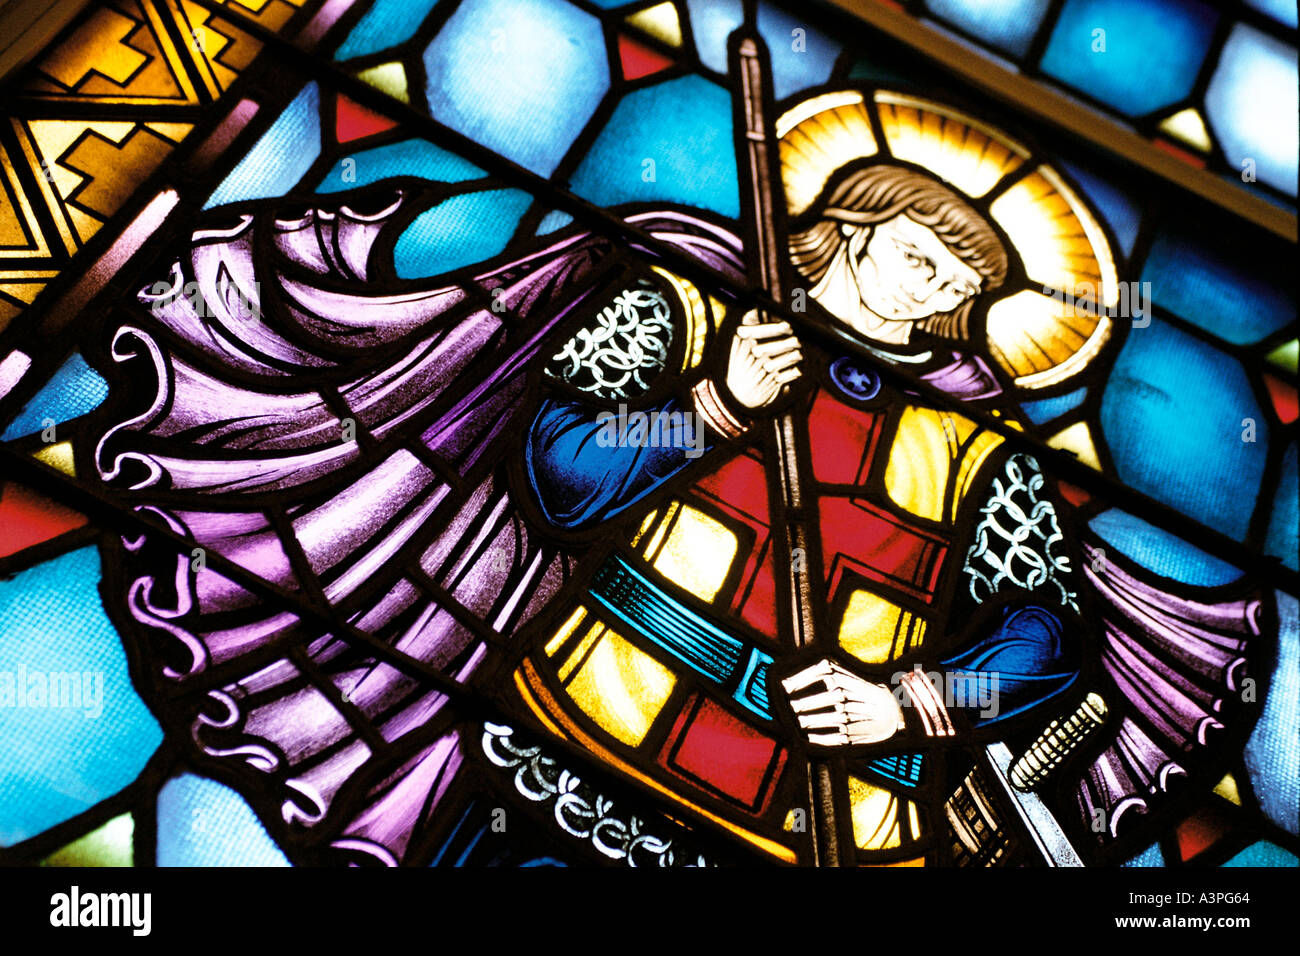 Stained glass window detail St George slaying a dragon - Stock Image